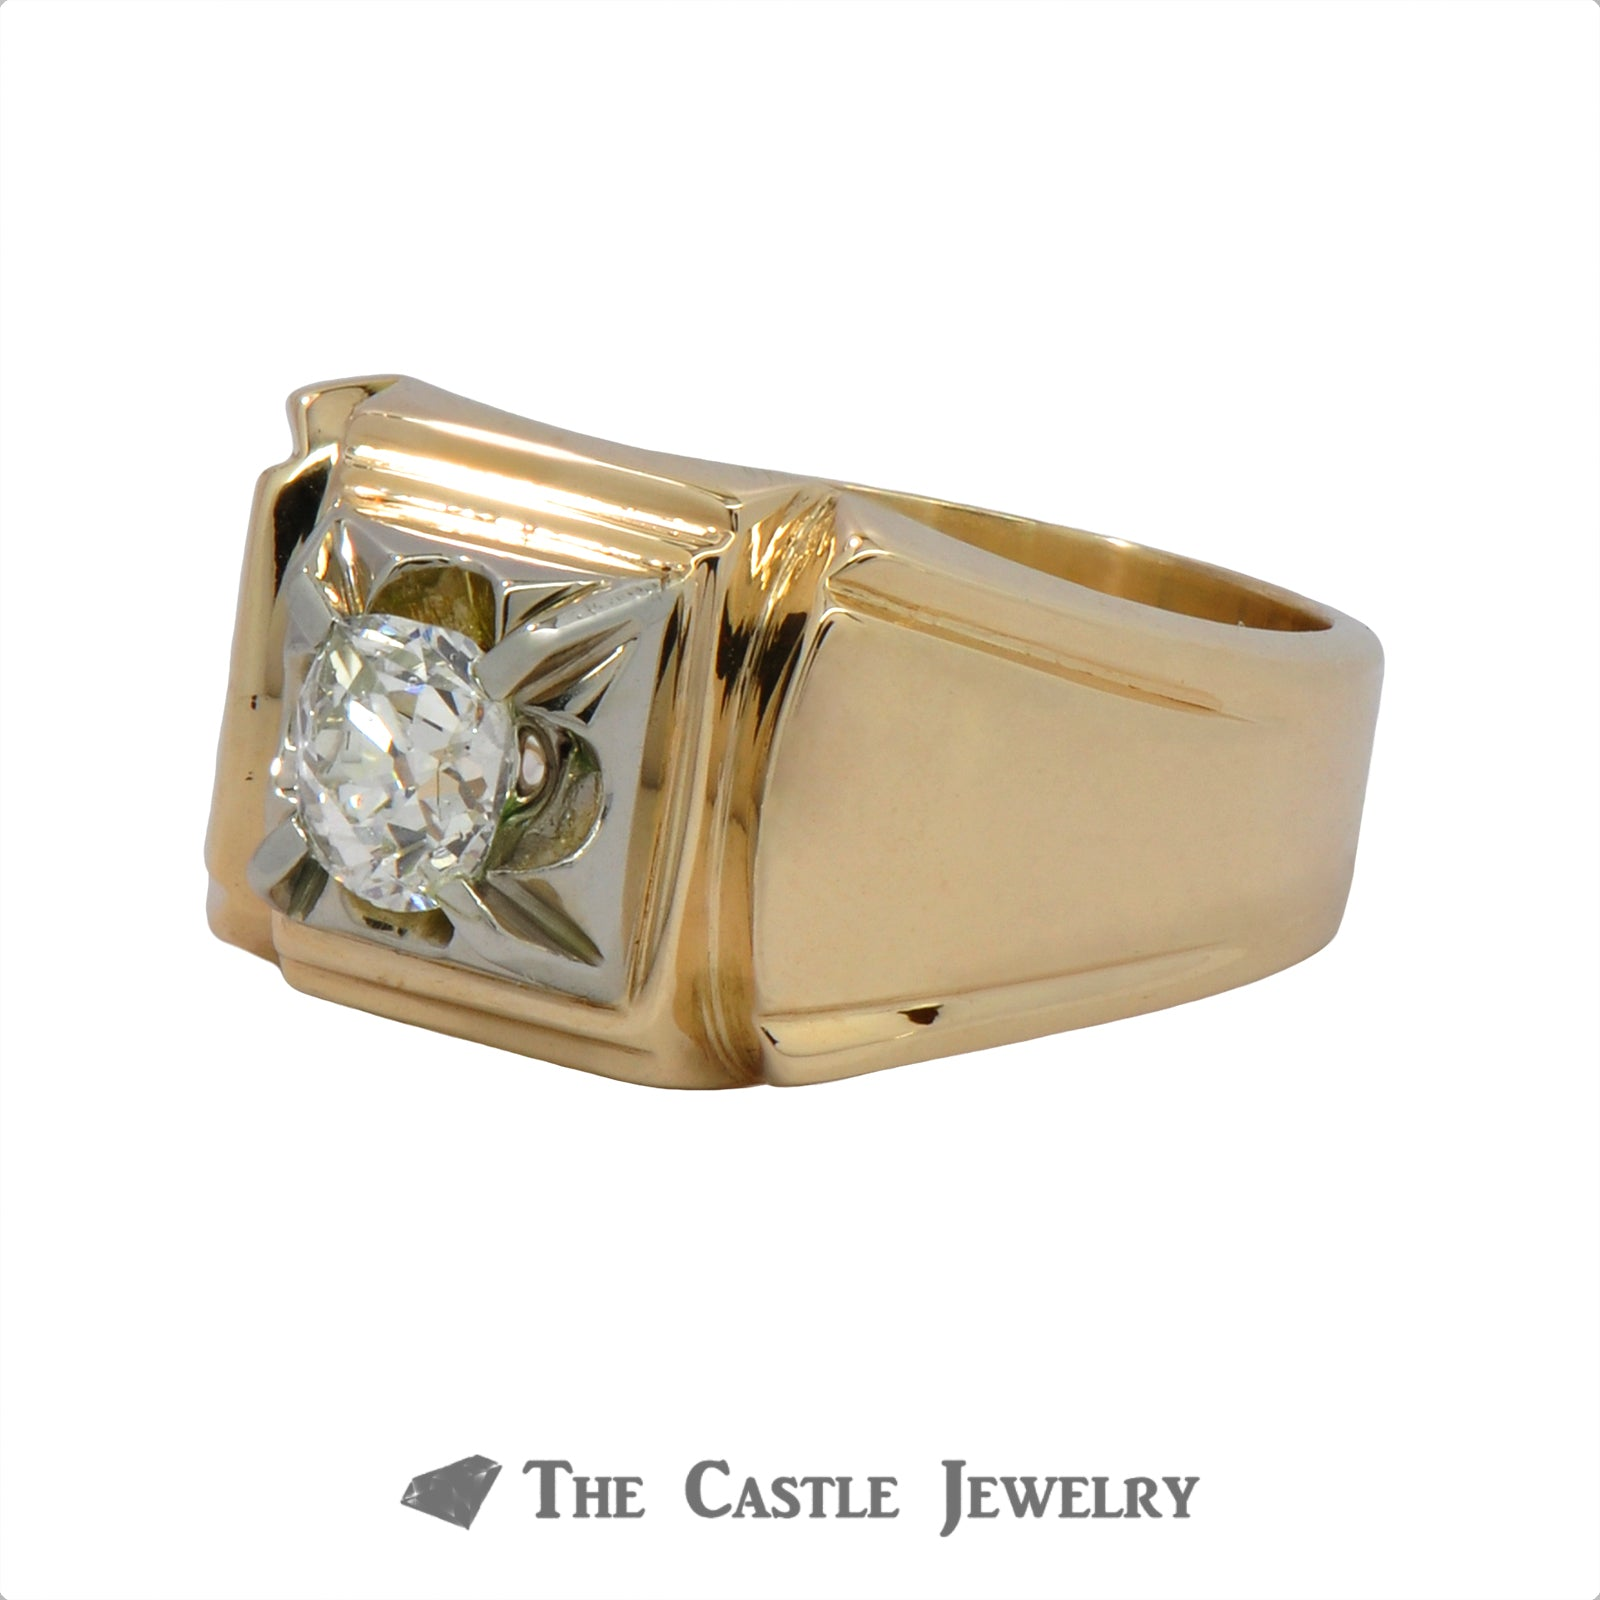 .50 Carat Old Mine Cut Gent's Diamond Ring In 14k Yellow Gold-2